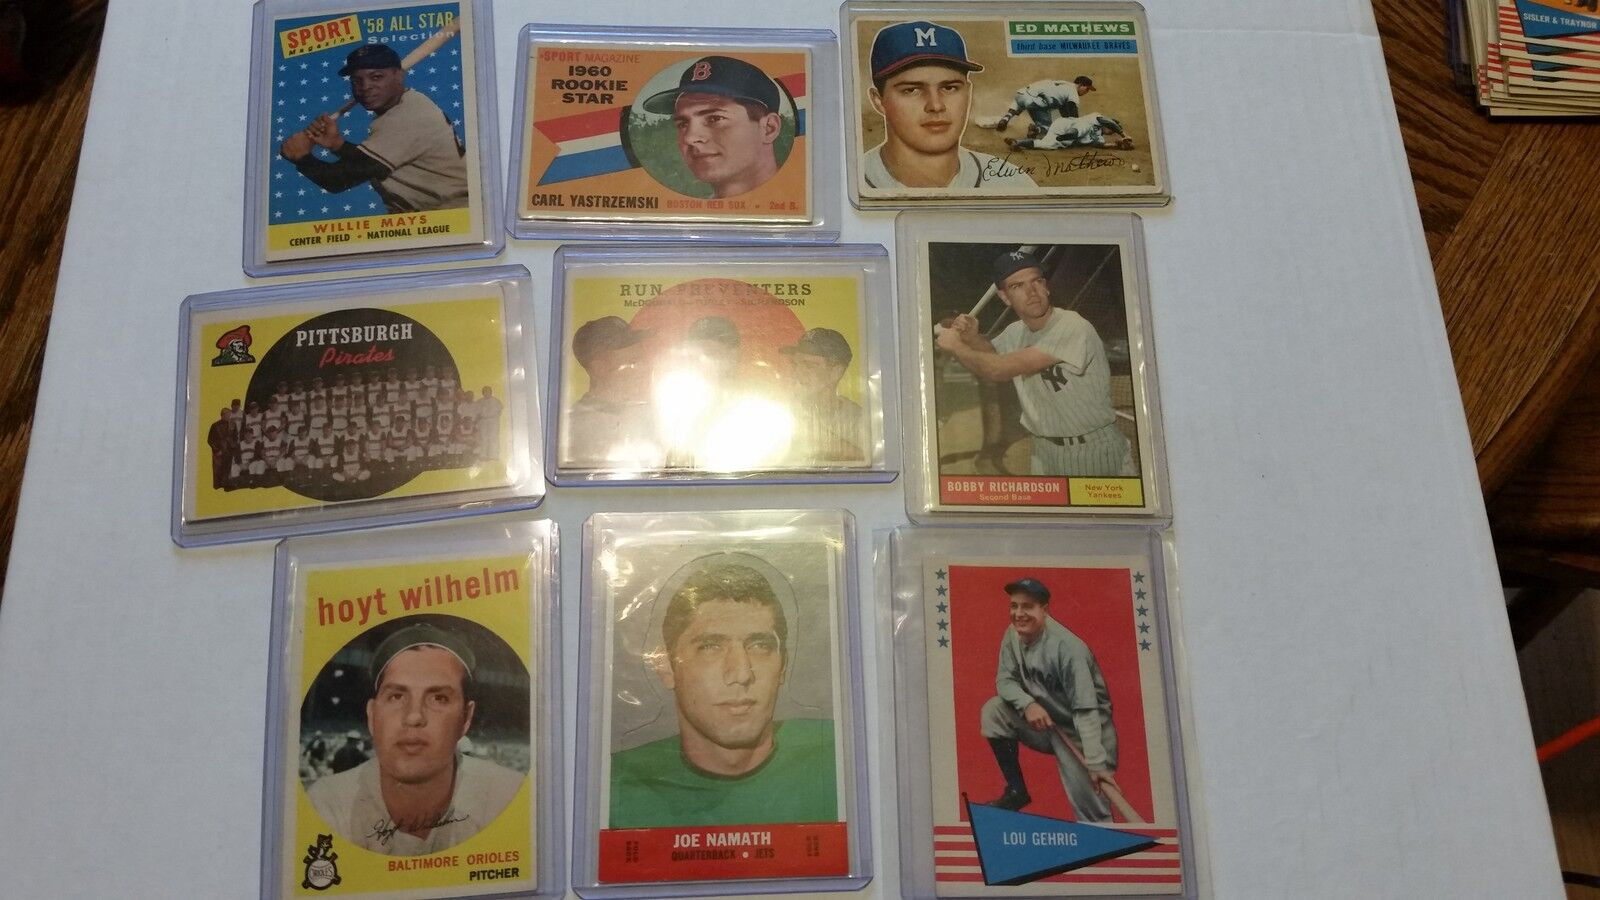 Merts sports cards